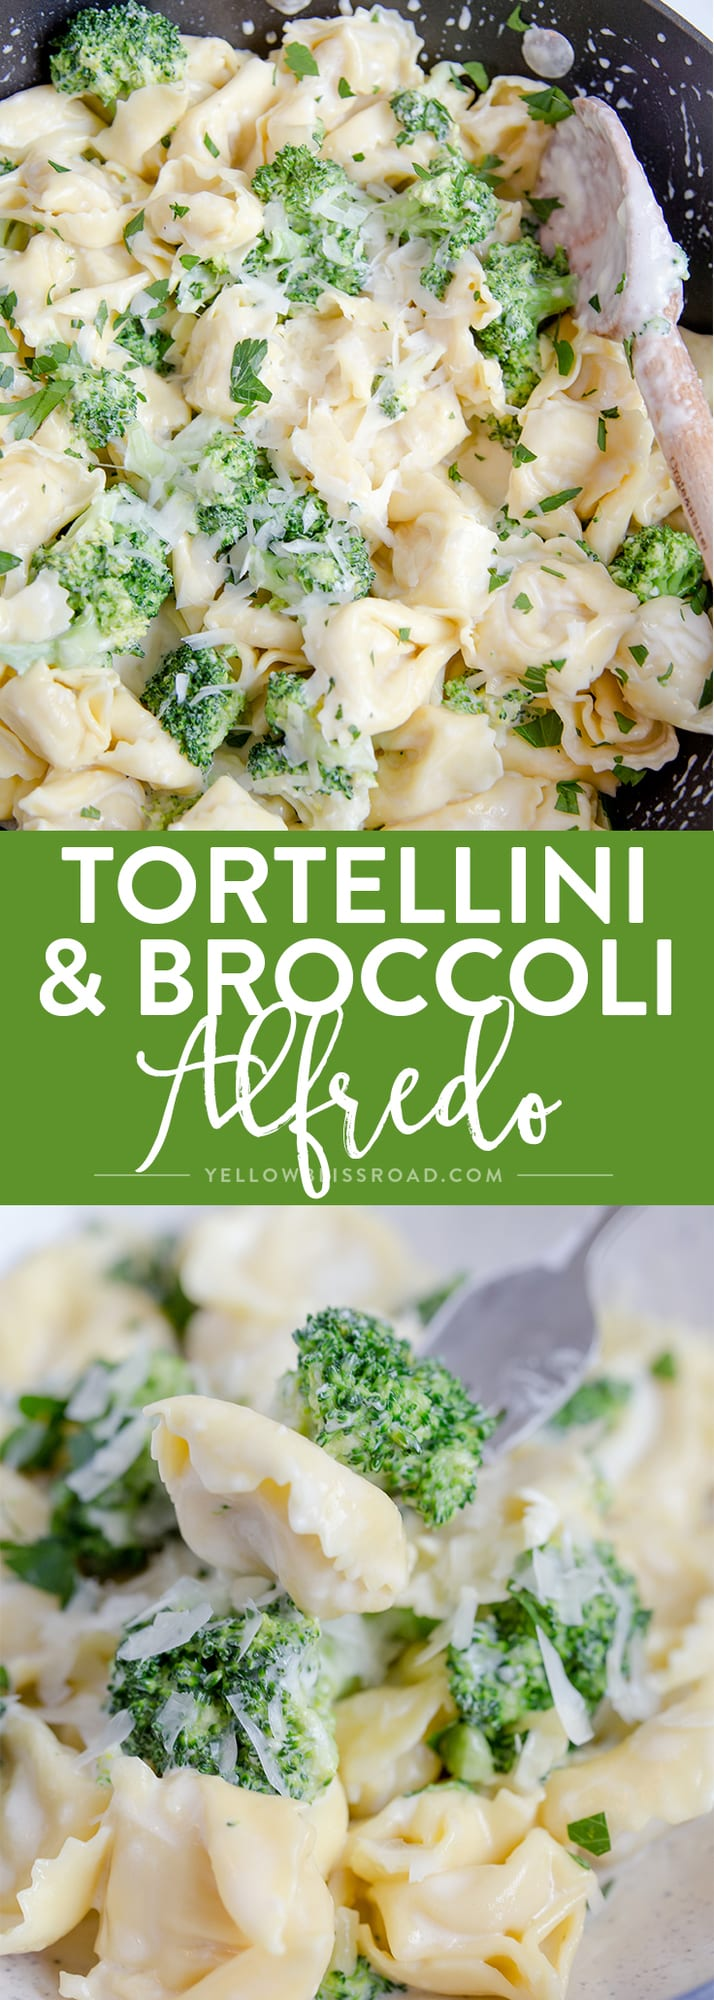 Broccoli Tortellini Alfredo comes together in just 15 minutes - It's great option when you need to get dinner on the table in a hurry.